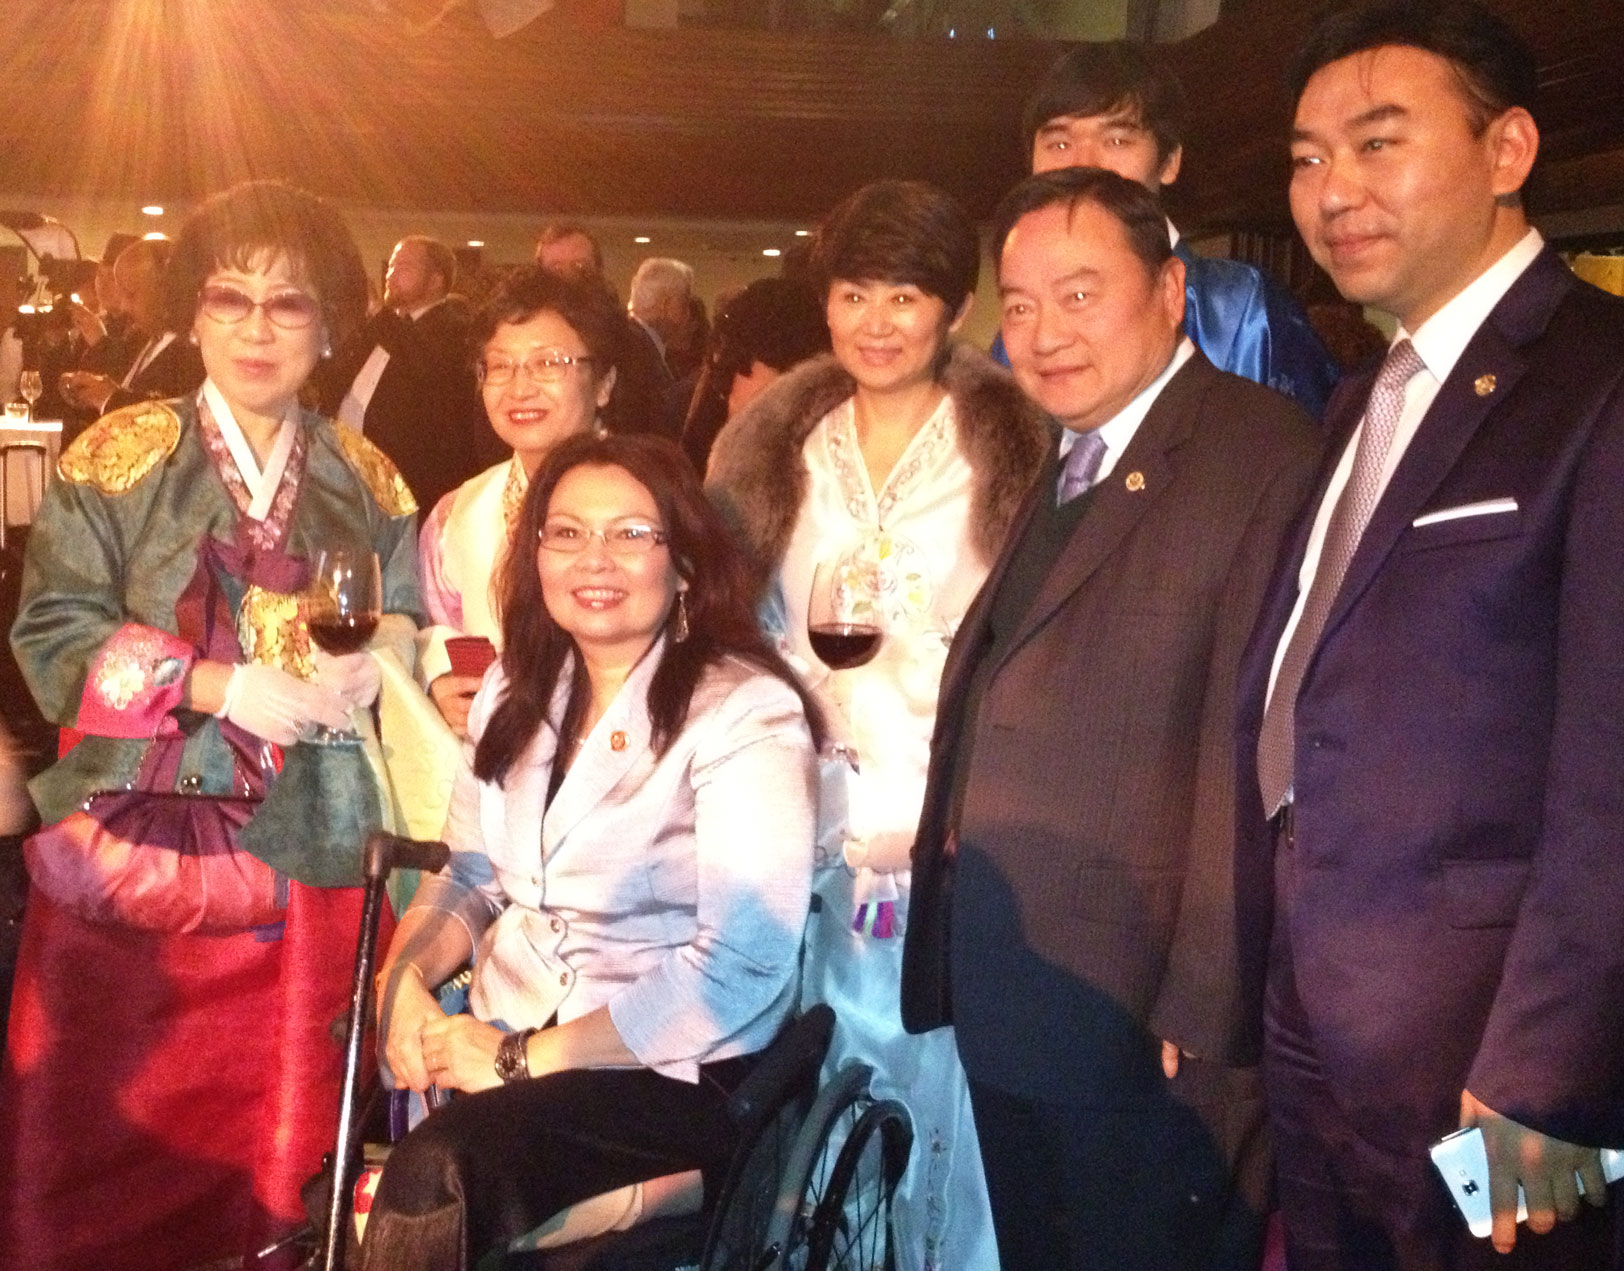 Tammy Duckworth and friends at the 2013 Inaugural Ball